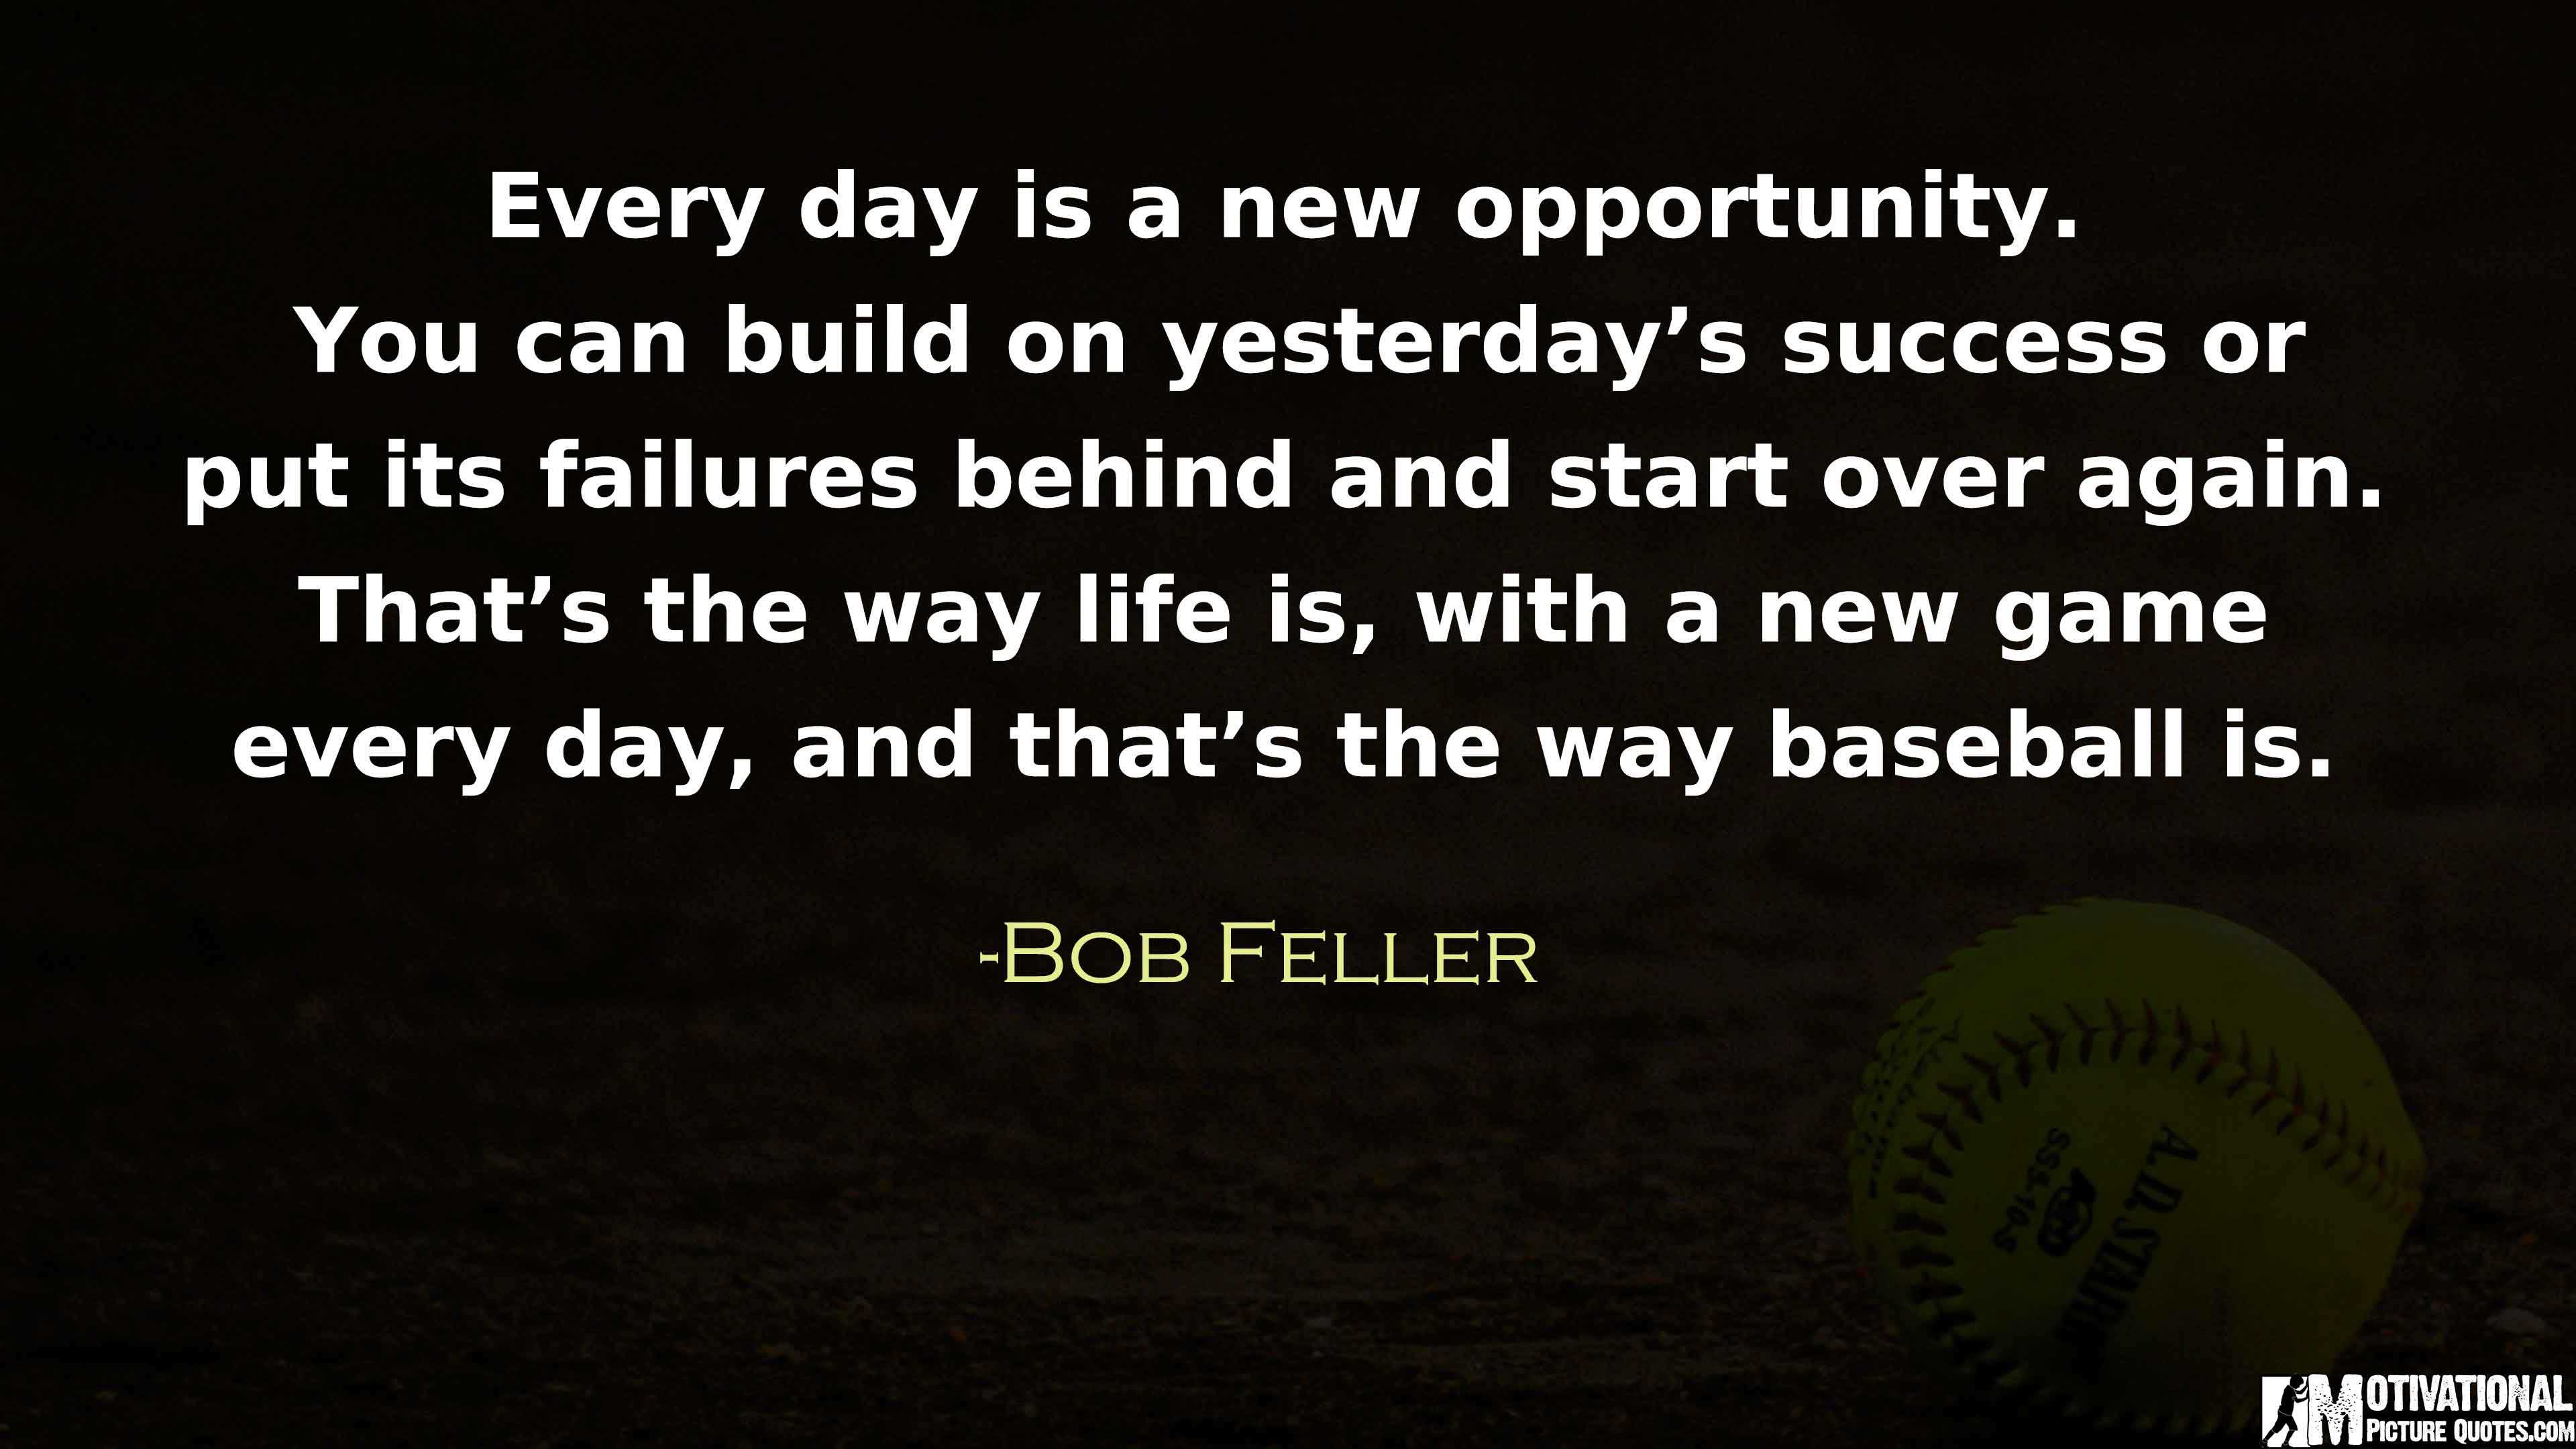 Game Day Quotes 20 Inspirational Baseball Quotes Images  Insbright